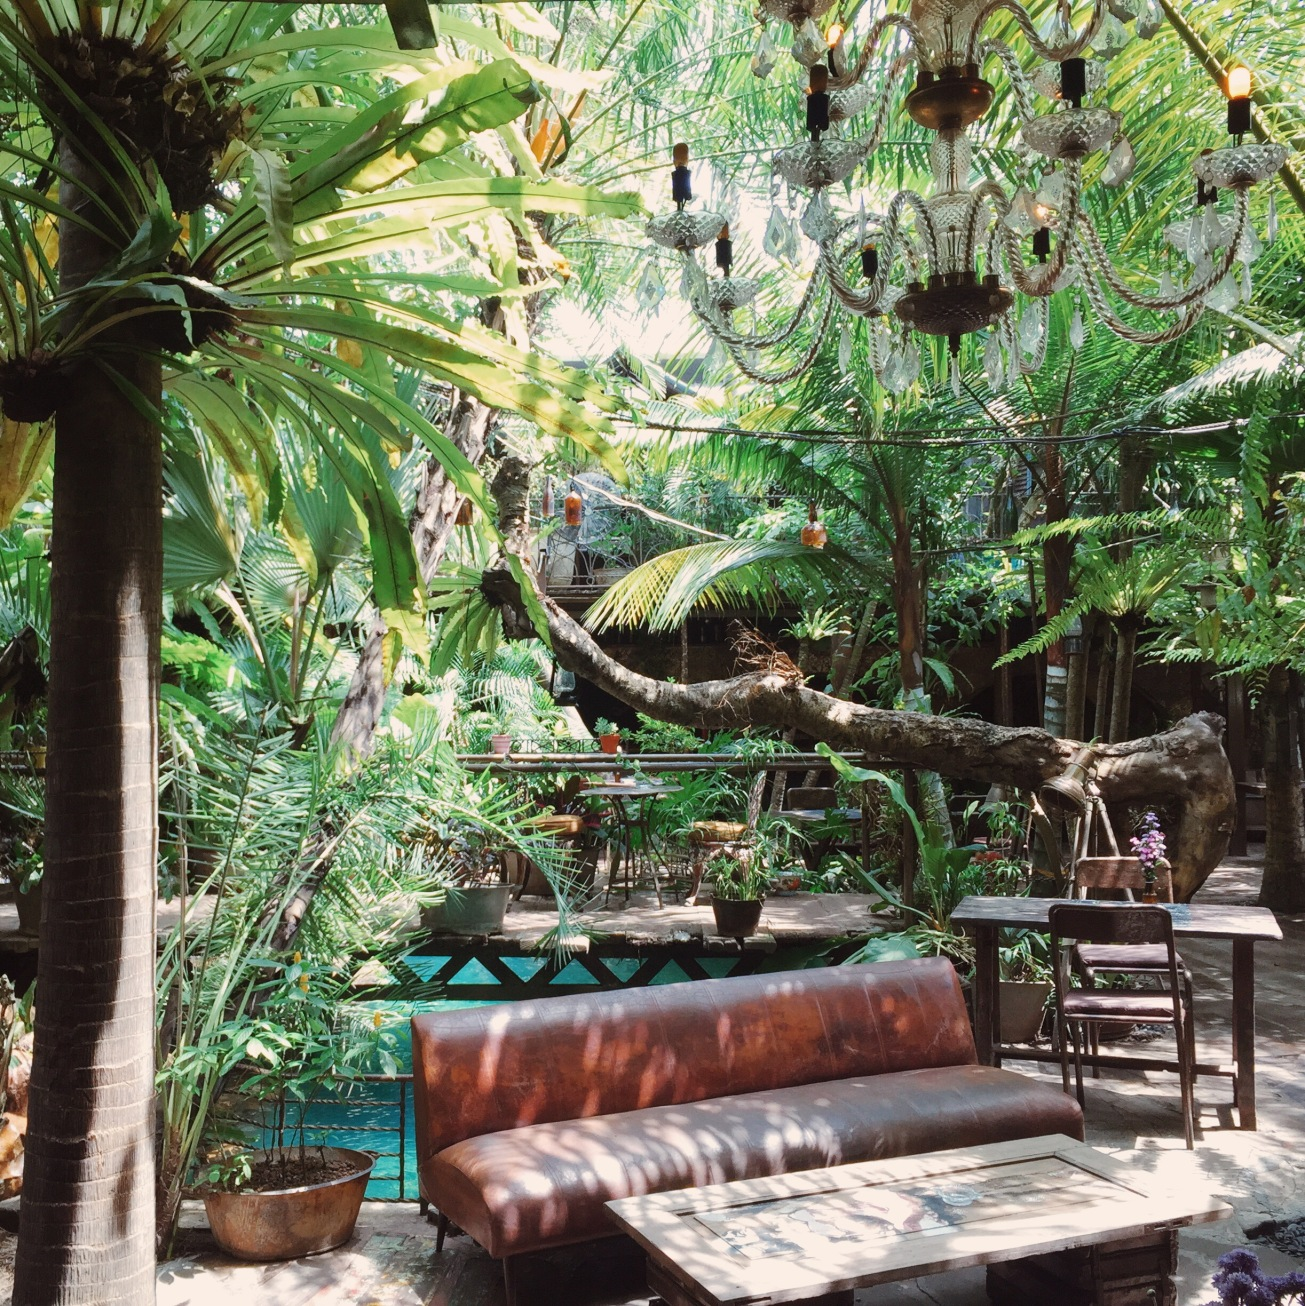 The magical garden at La Favela